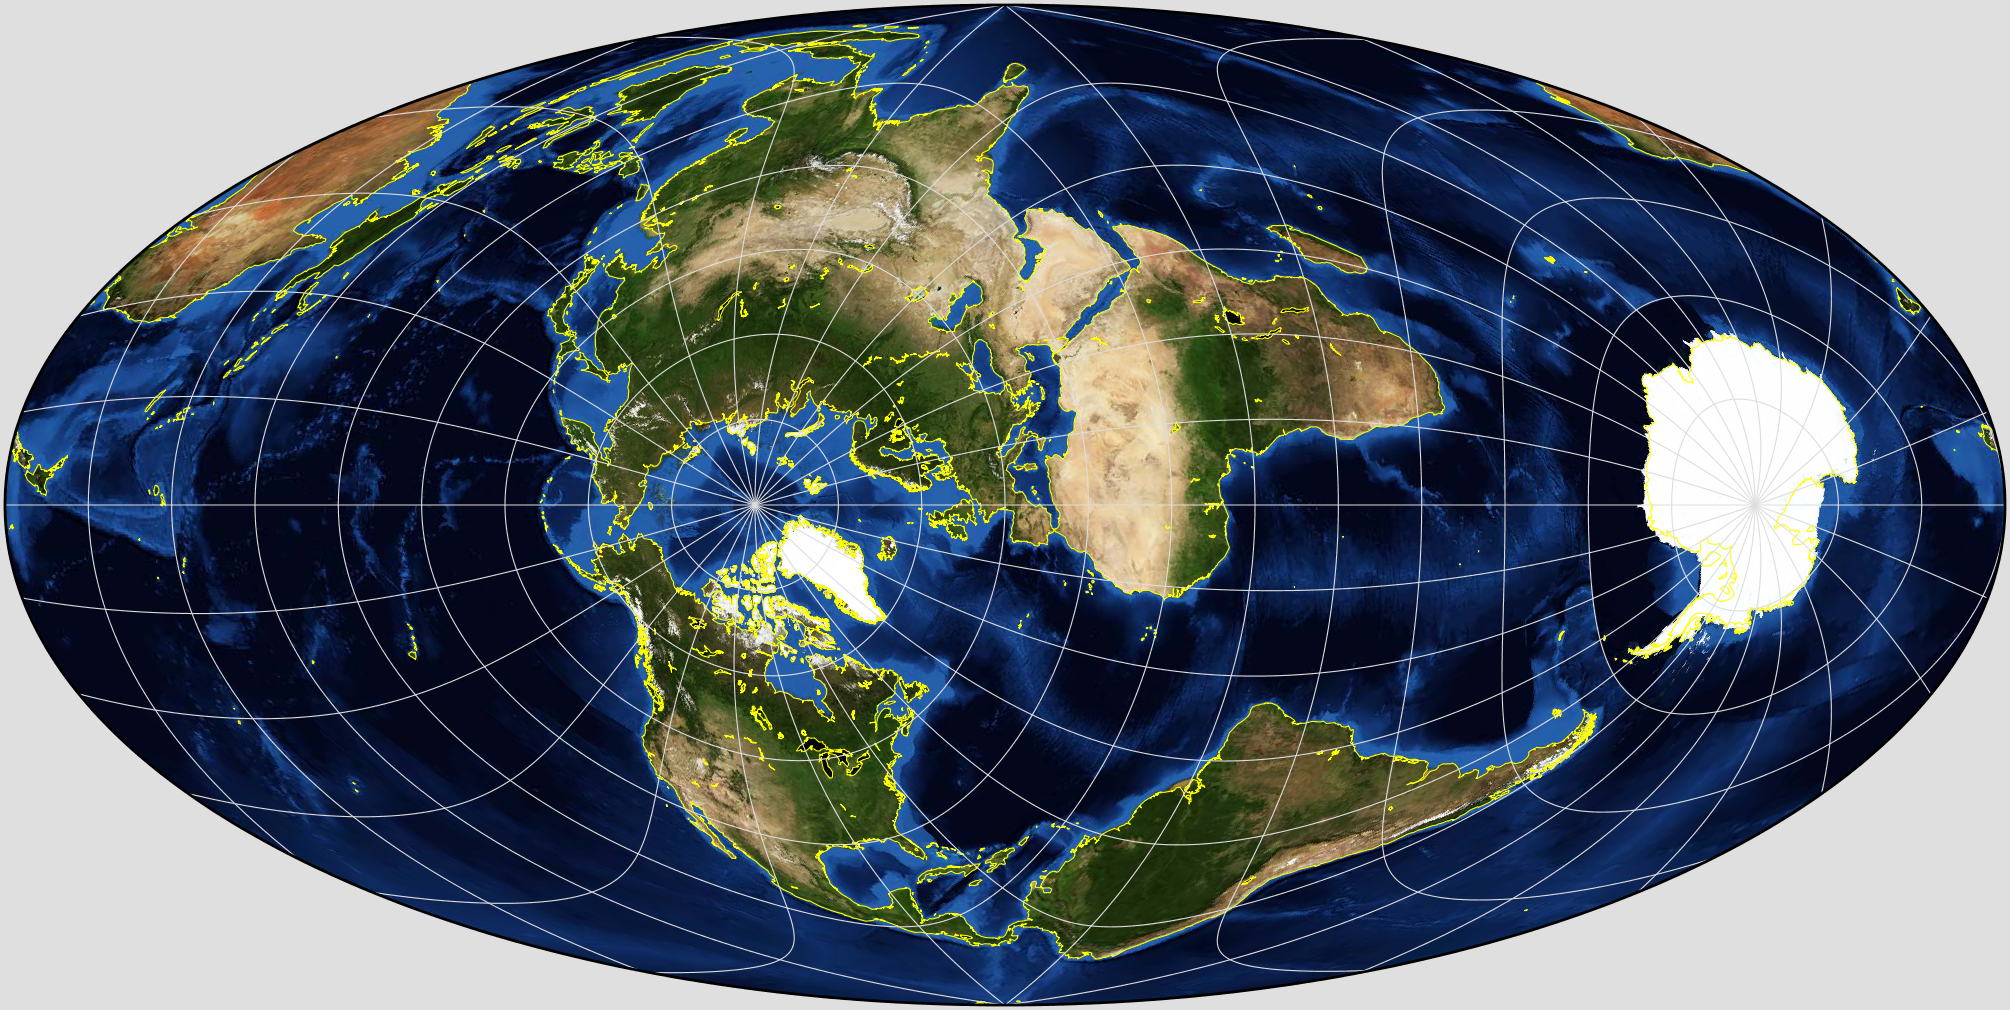 NASA GISS: G.Projector: User's Guide: List of Map Projections on peters projection map vs mercator, accurate scale map of globe, flat map and globe, peters projection map with scale, peters map of the world, peters projection of the world,